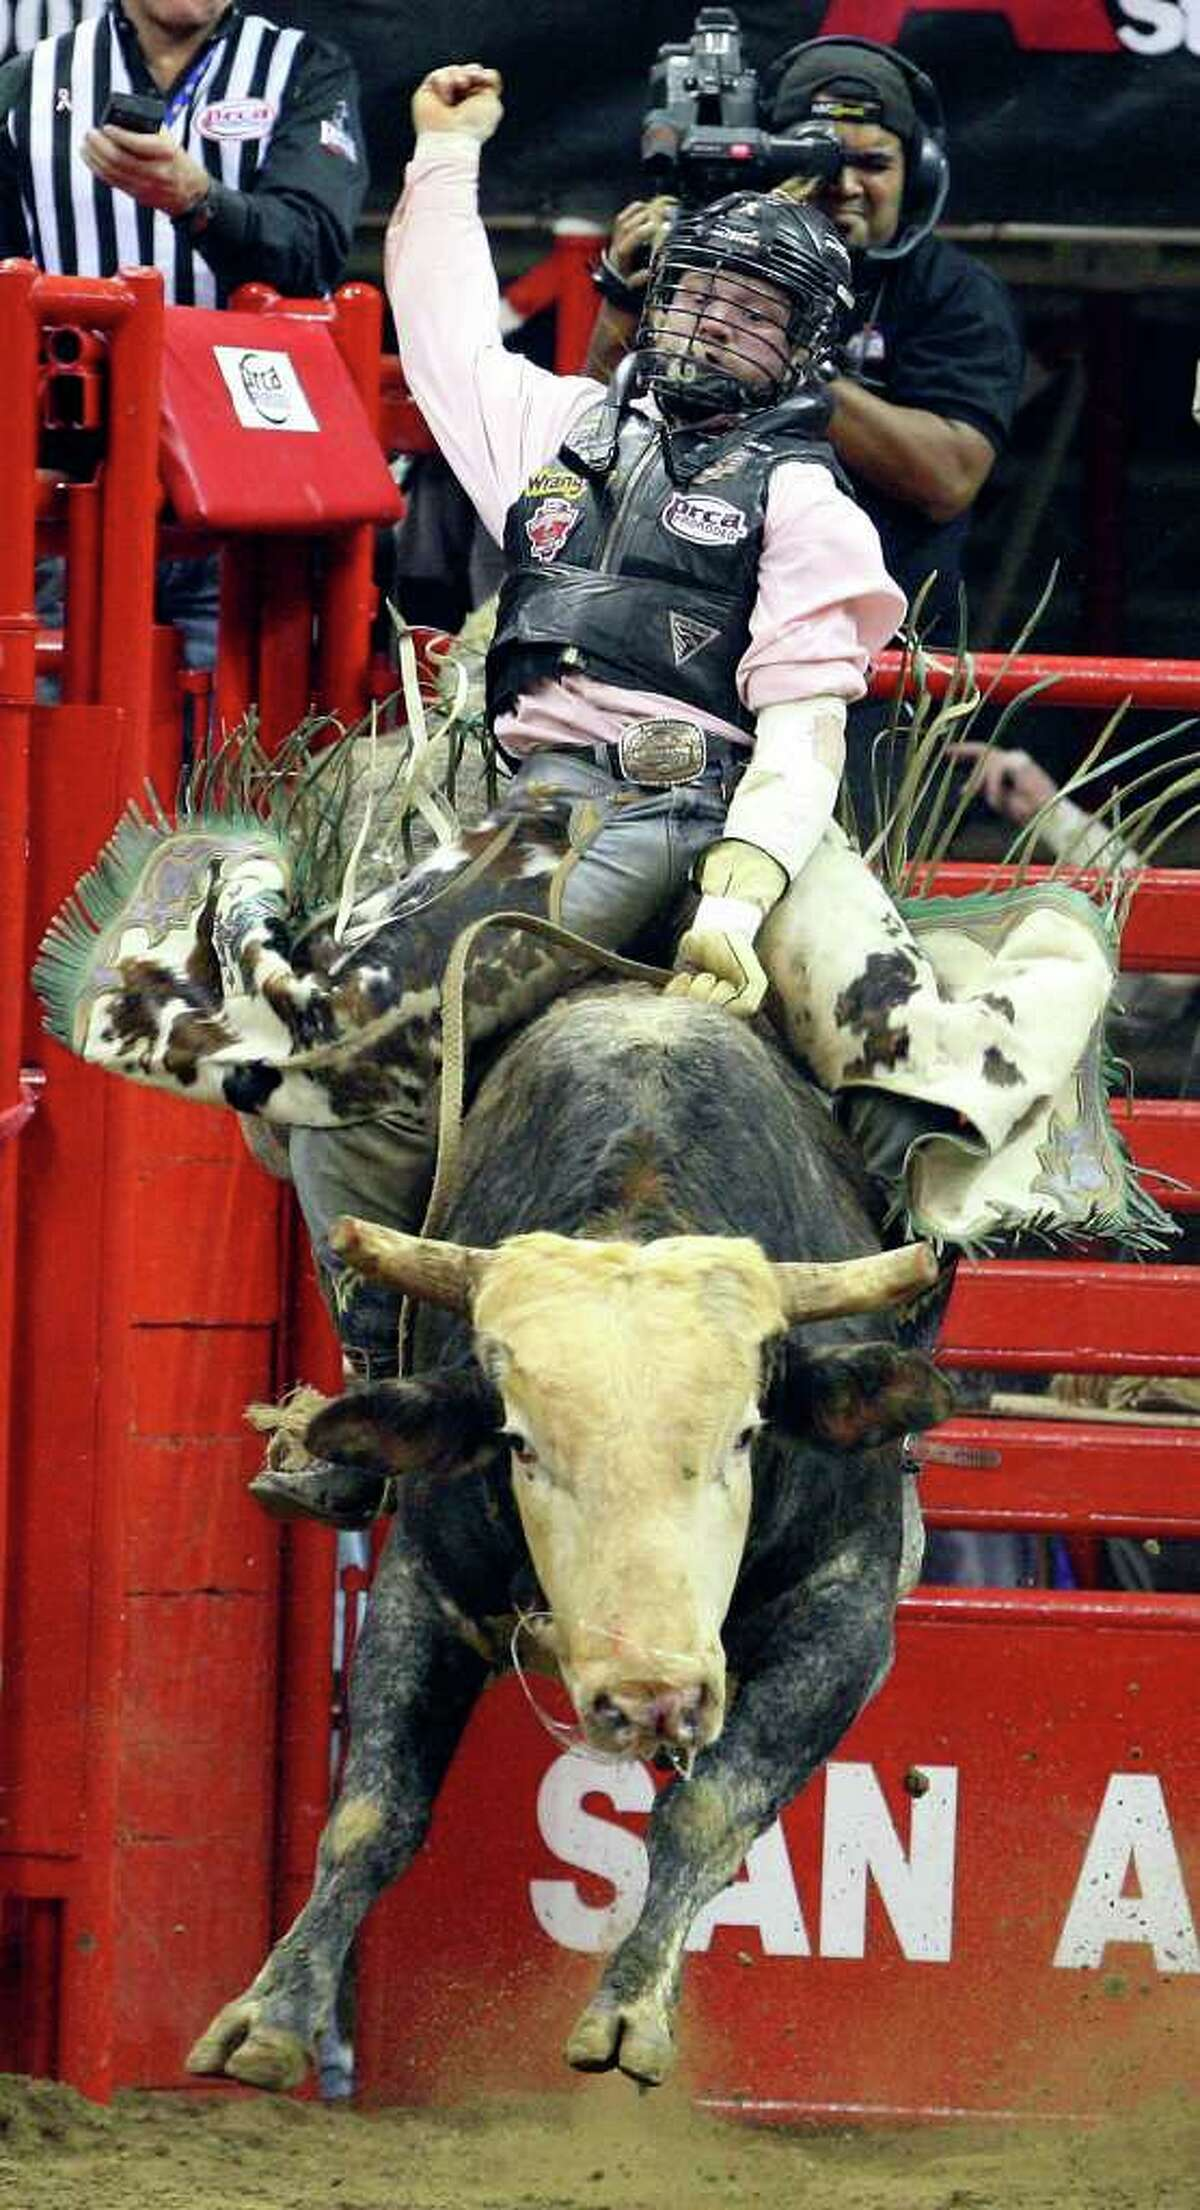 FOR METRO - Will Farrell , from Thermopolis, WY , competes in the Bull Riding event Saturday Feb. 5, 2011 during the San Antonio Stock Show & Rodeo at the AT&T Center. Farrell was thrown off his bull. (PHOTO BY EDWARD A. ORNELAS/eaornelas@express-news.net)